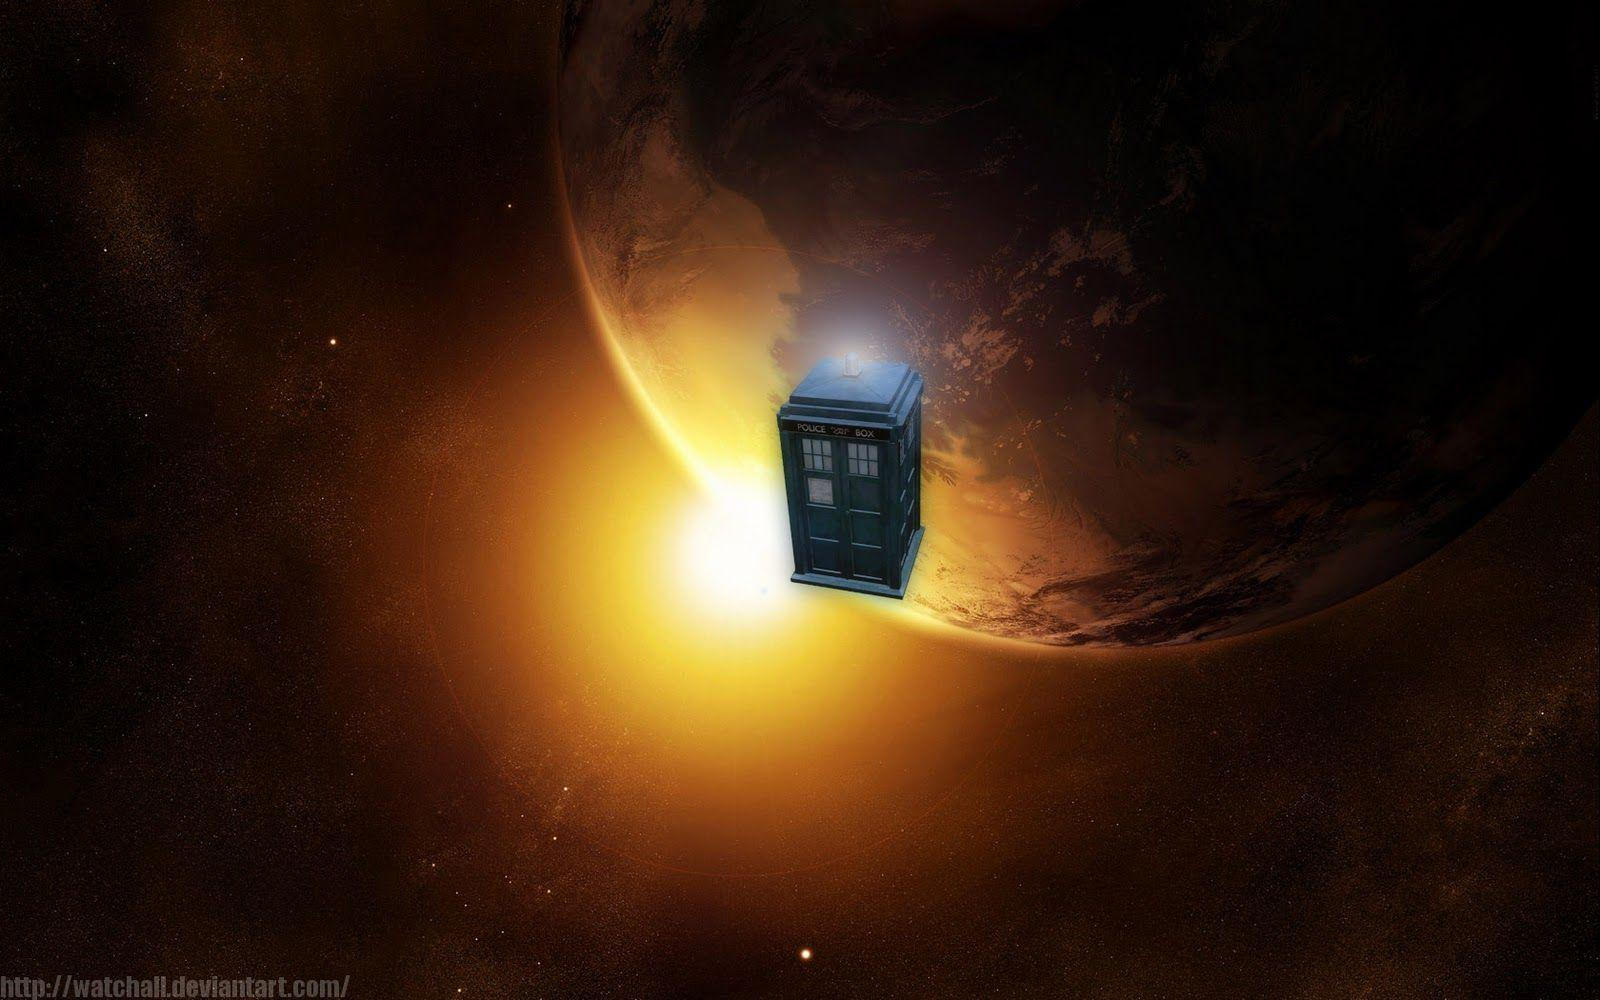 tardis images hd wallpaper - photo #36